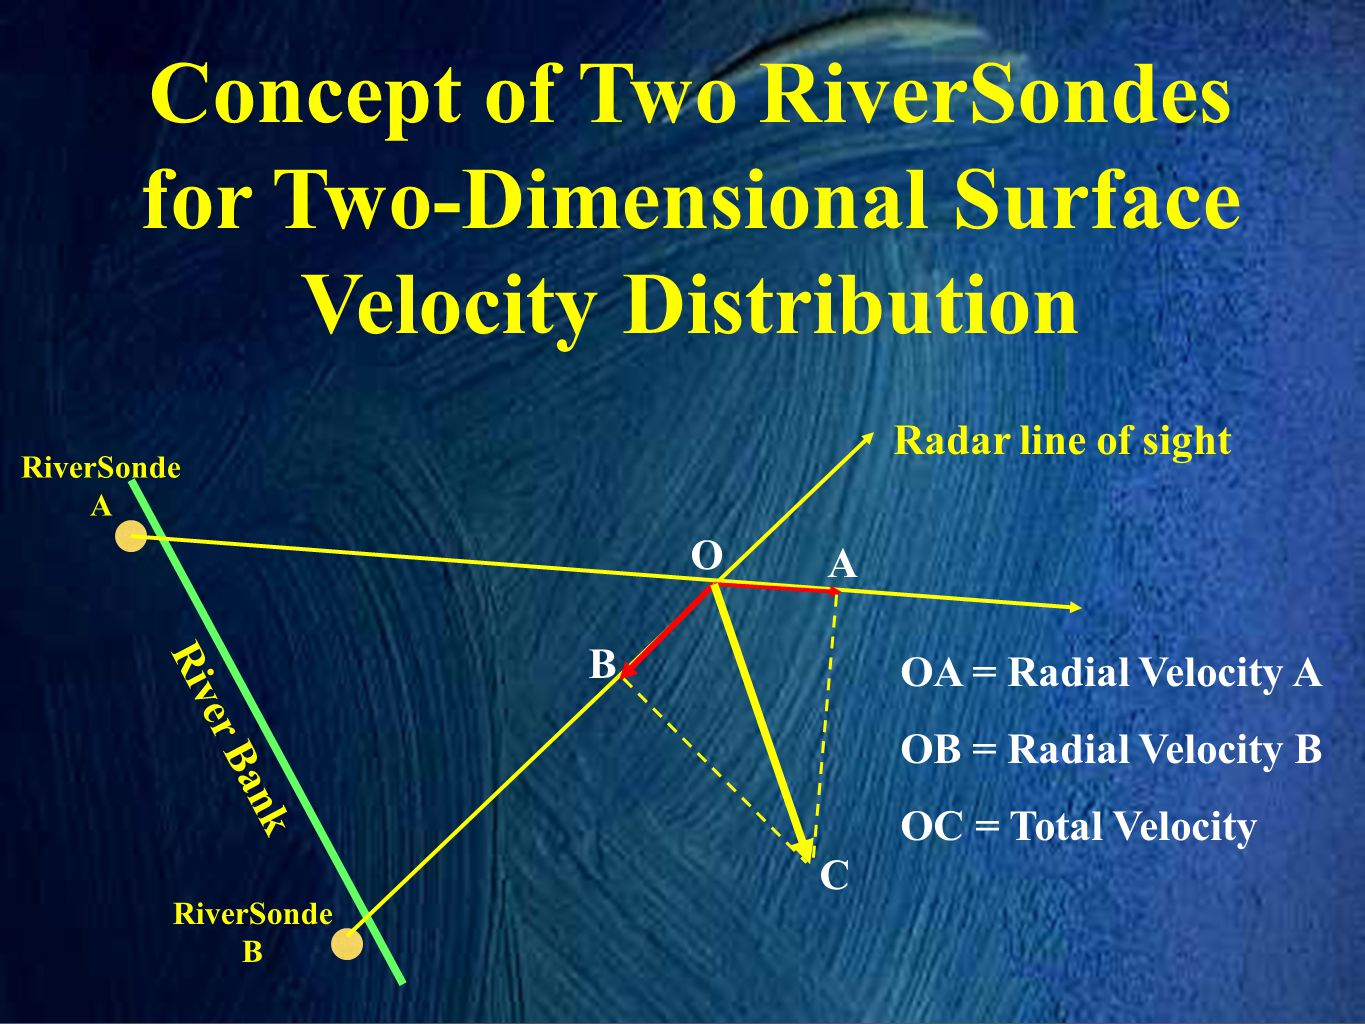 Concept of Two RiverSondes